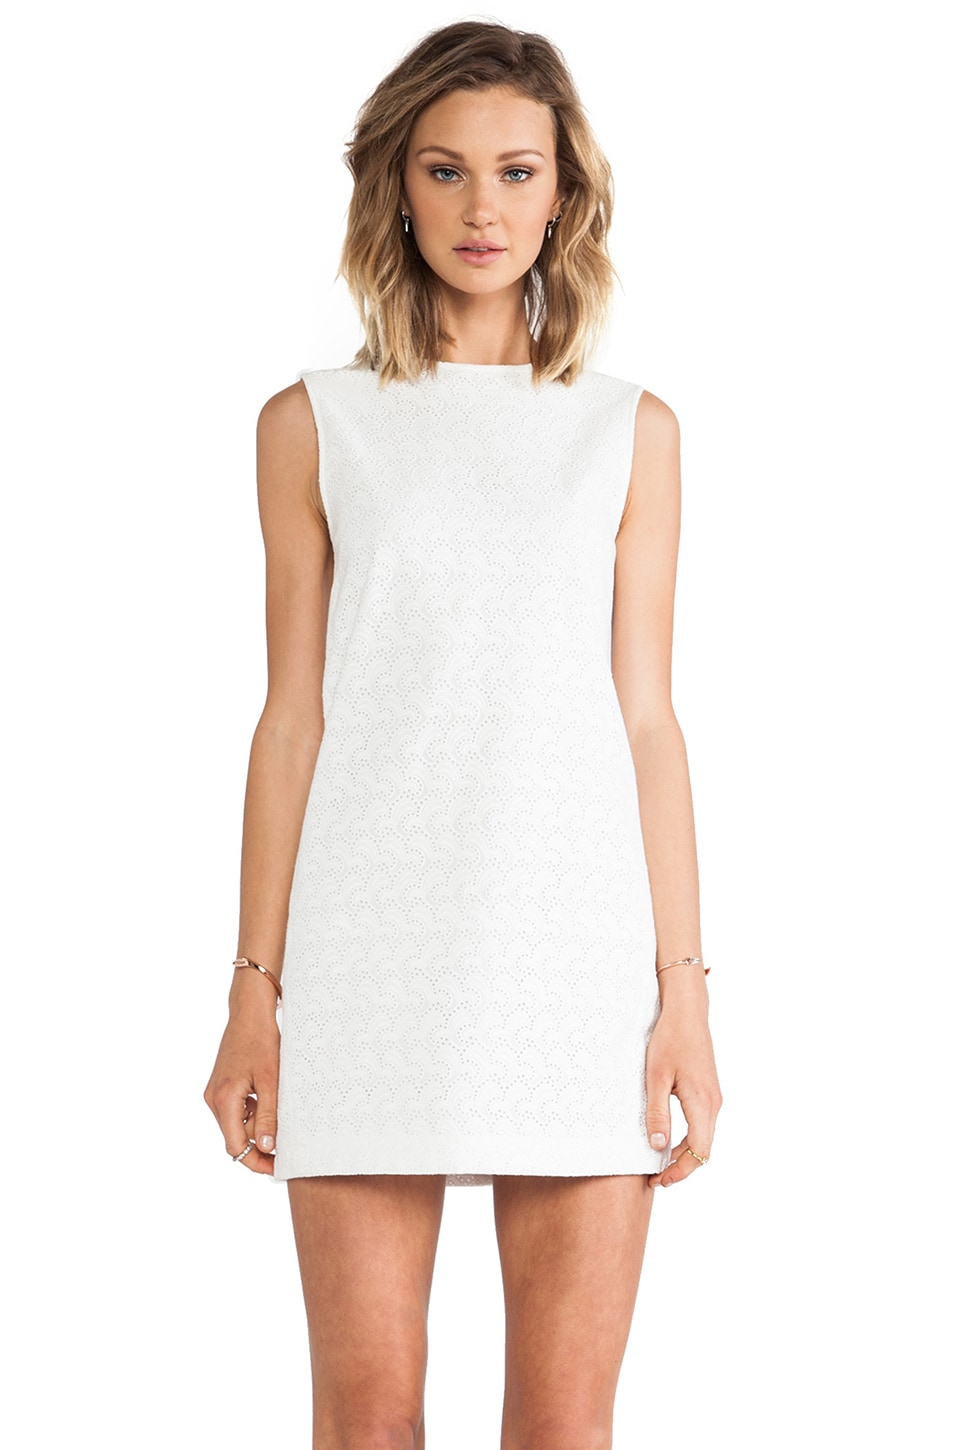 Theory Adraya Dress in White